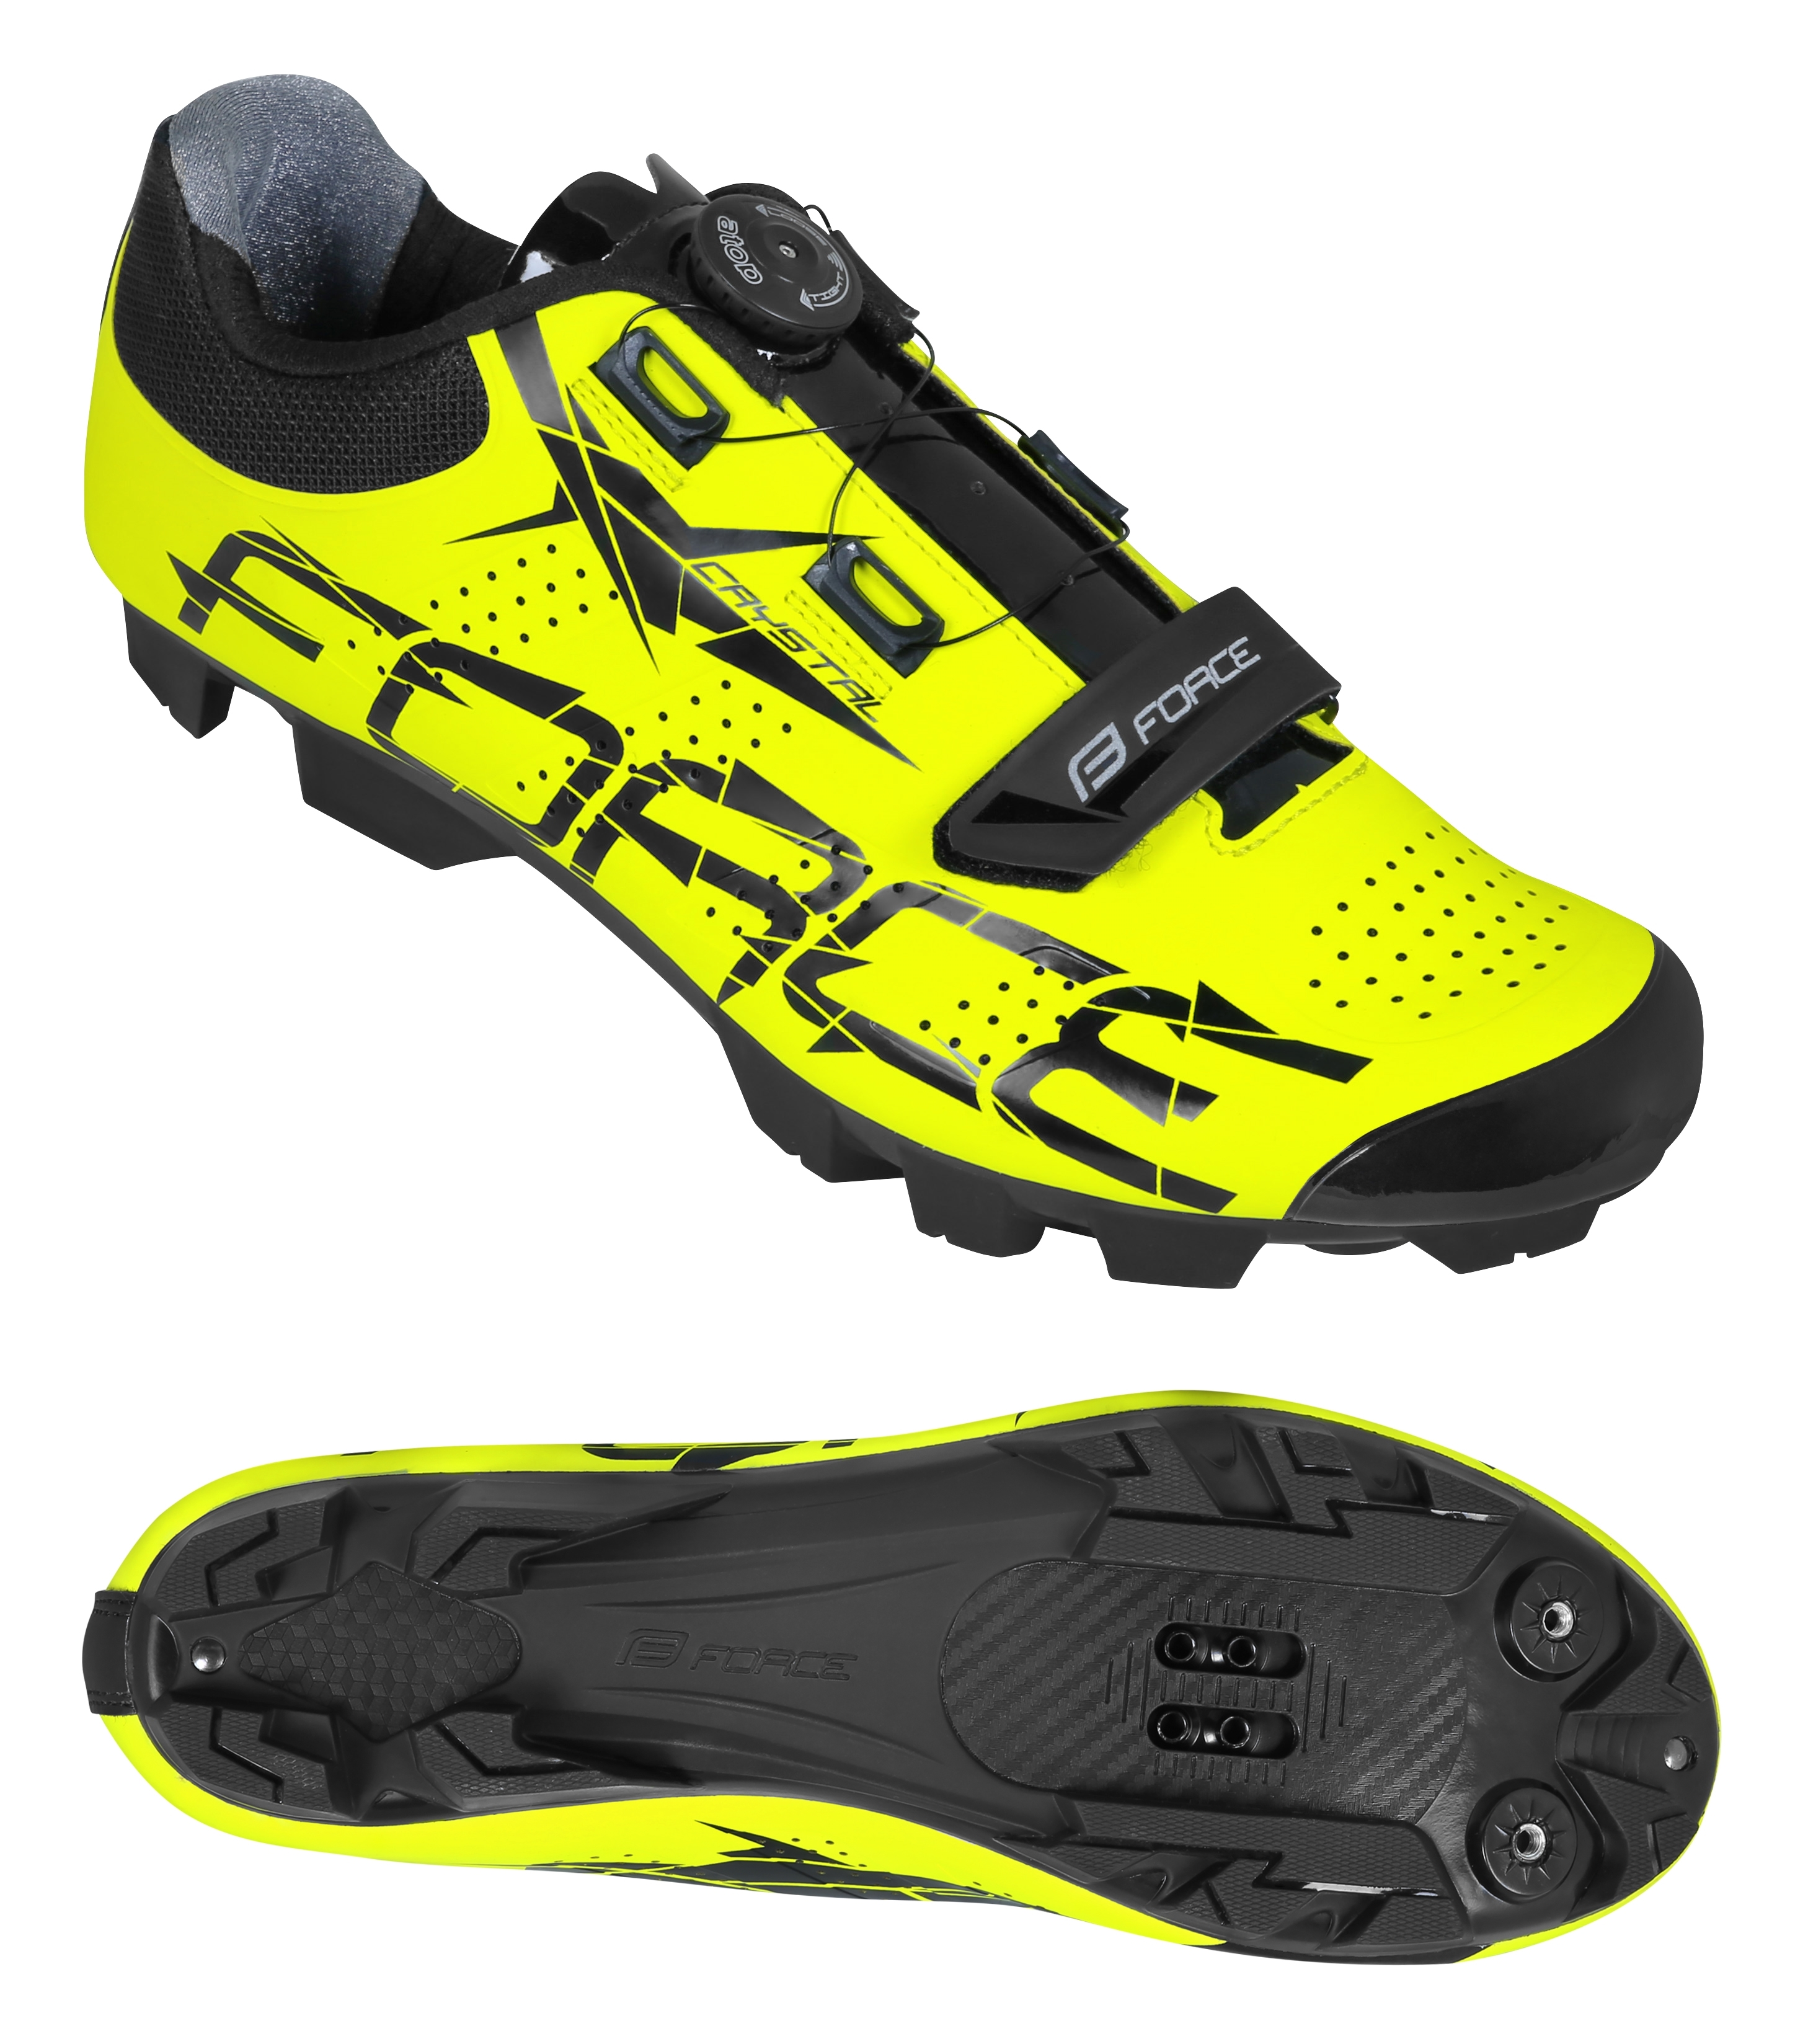 Tretry FORCE MTB CRYSTAL vel. 41, fluo